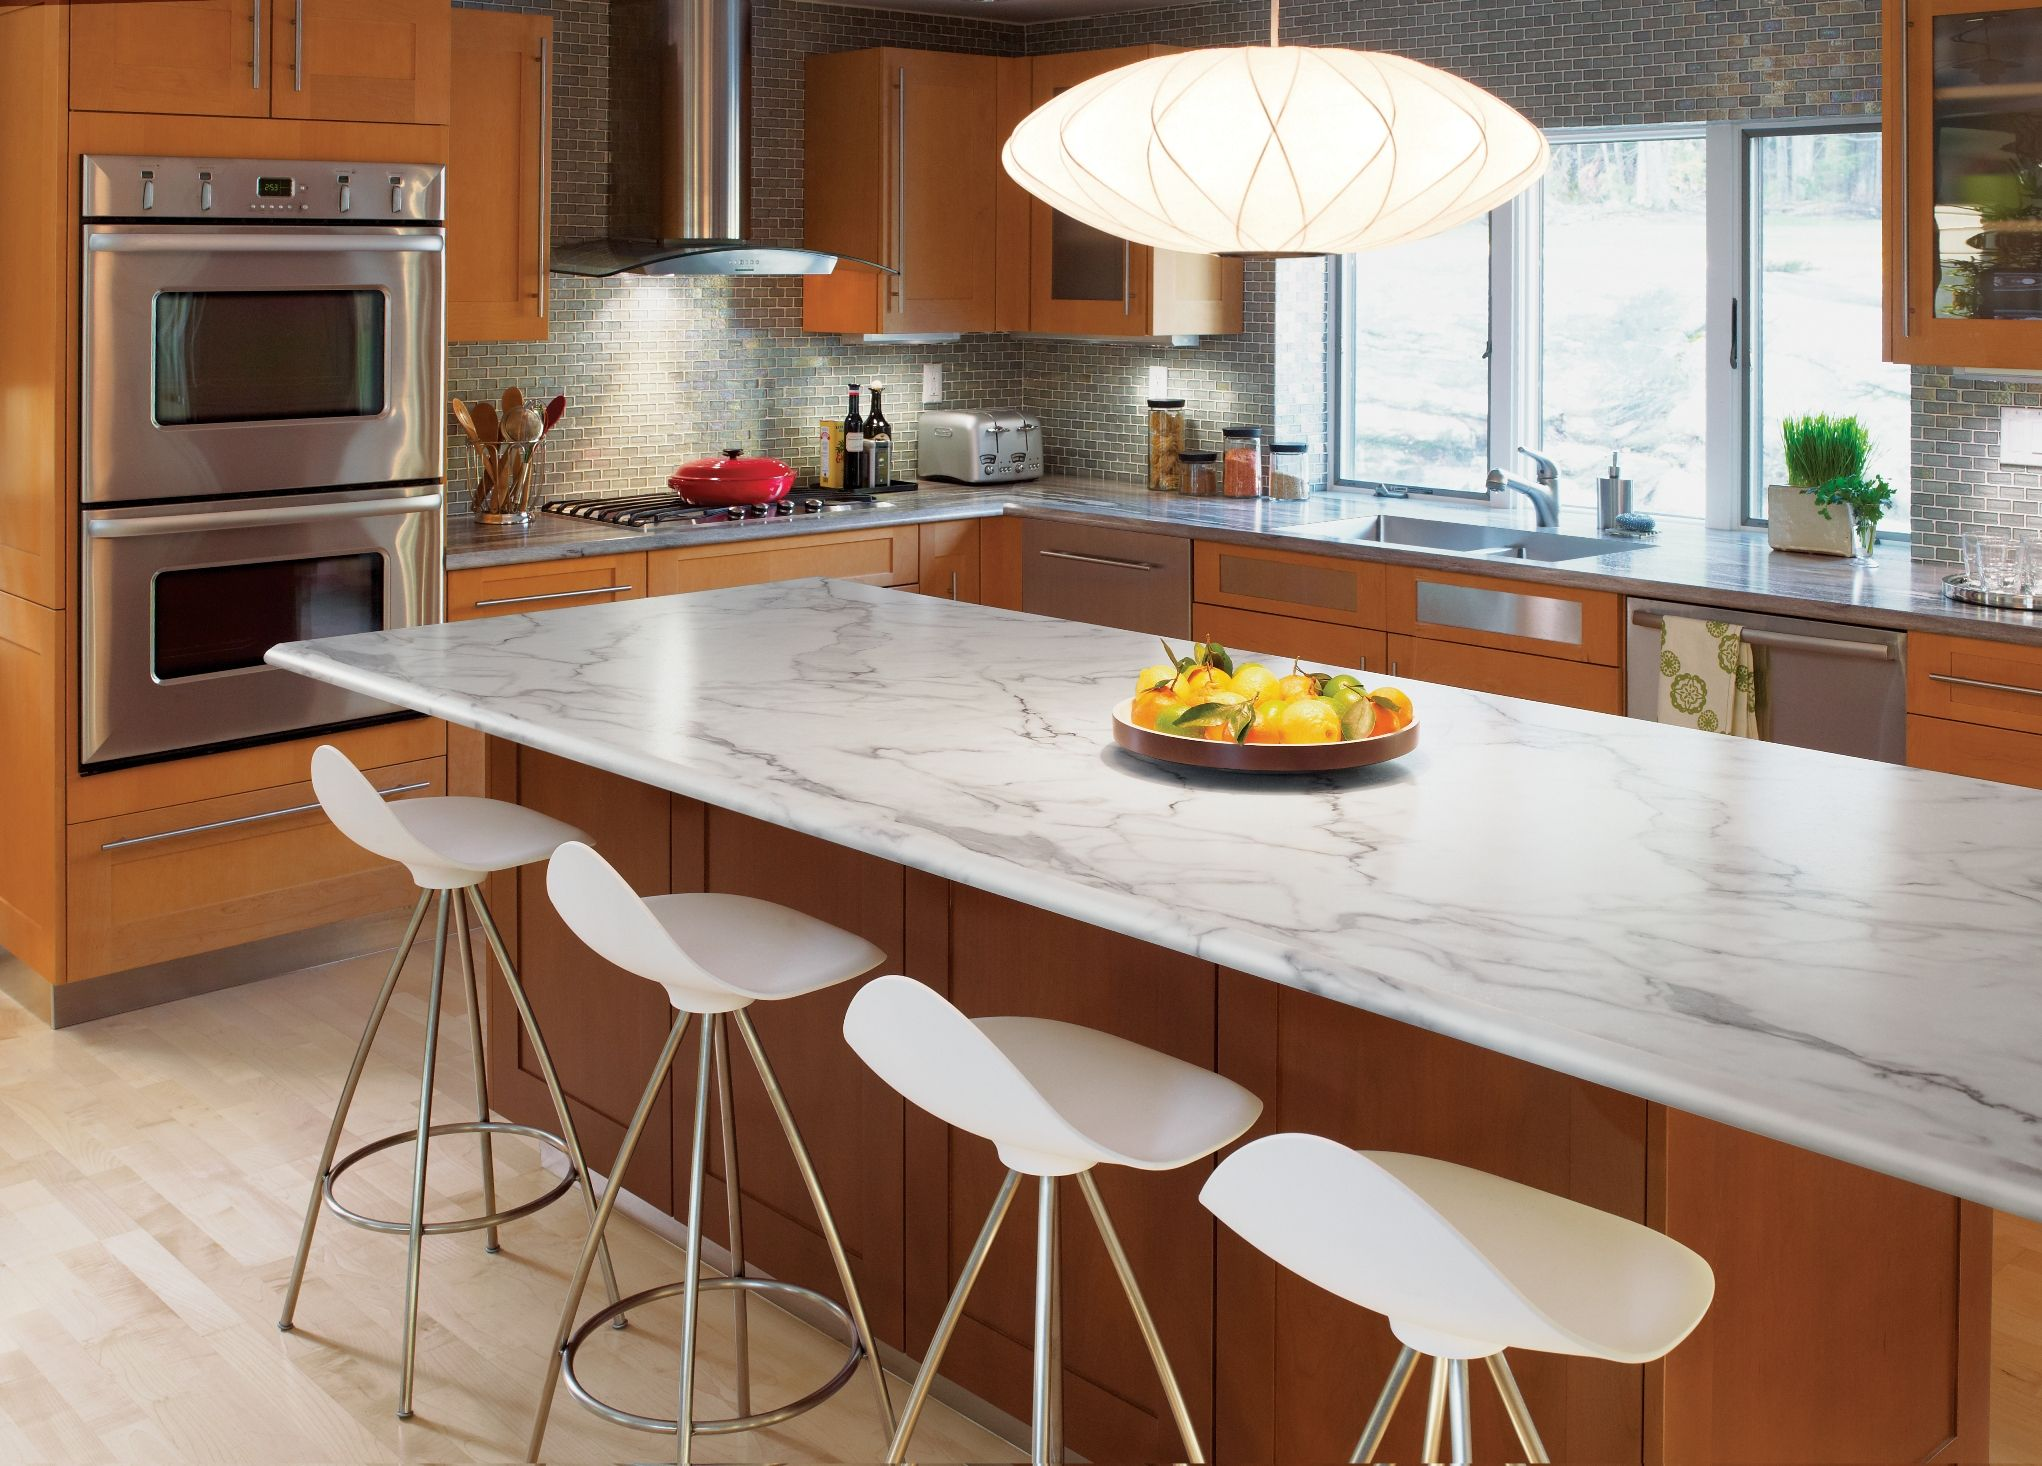 38 best images about Precision Countertops | Formica 180fx on ...